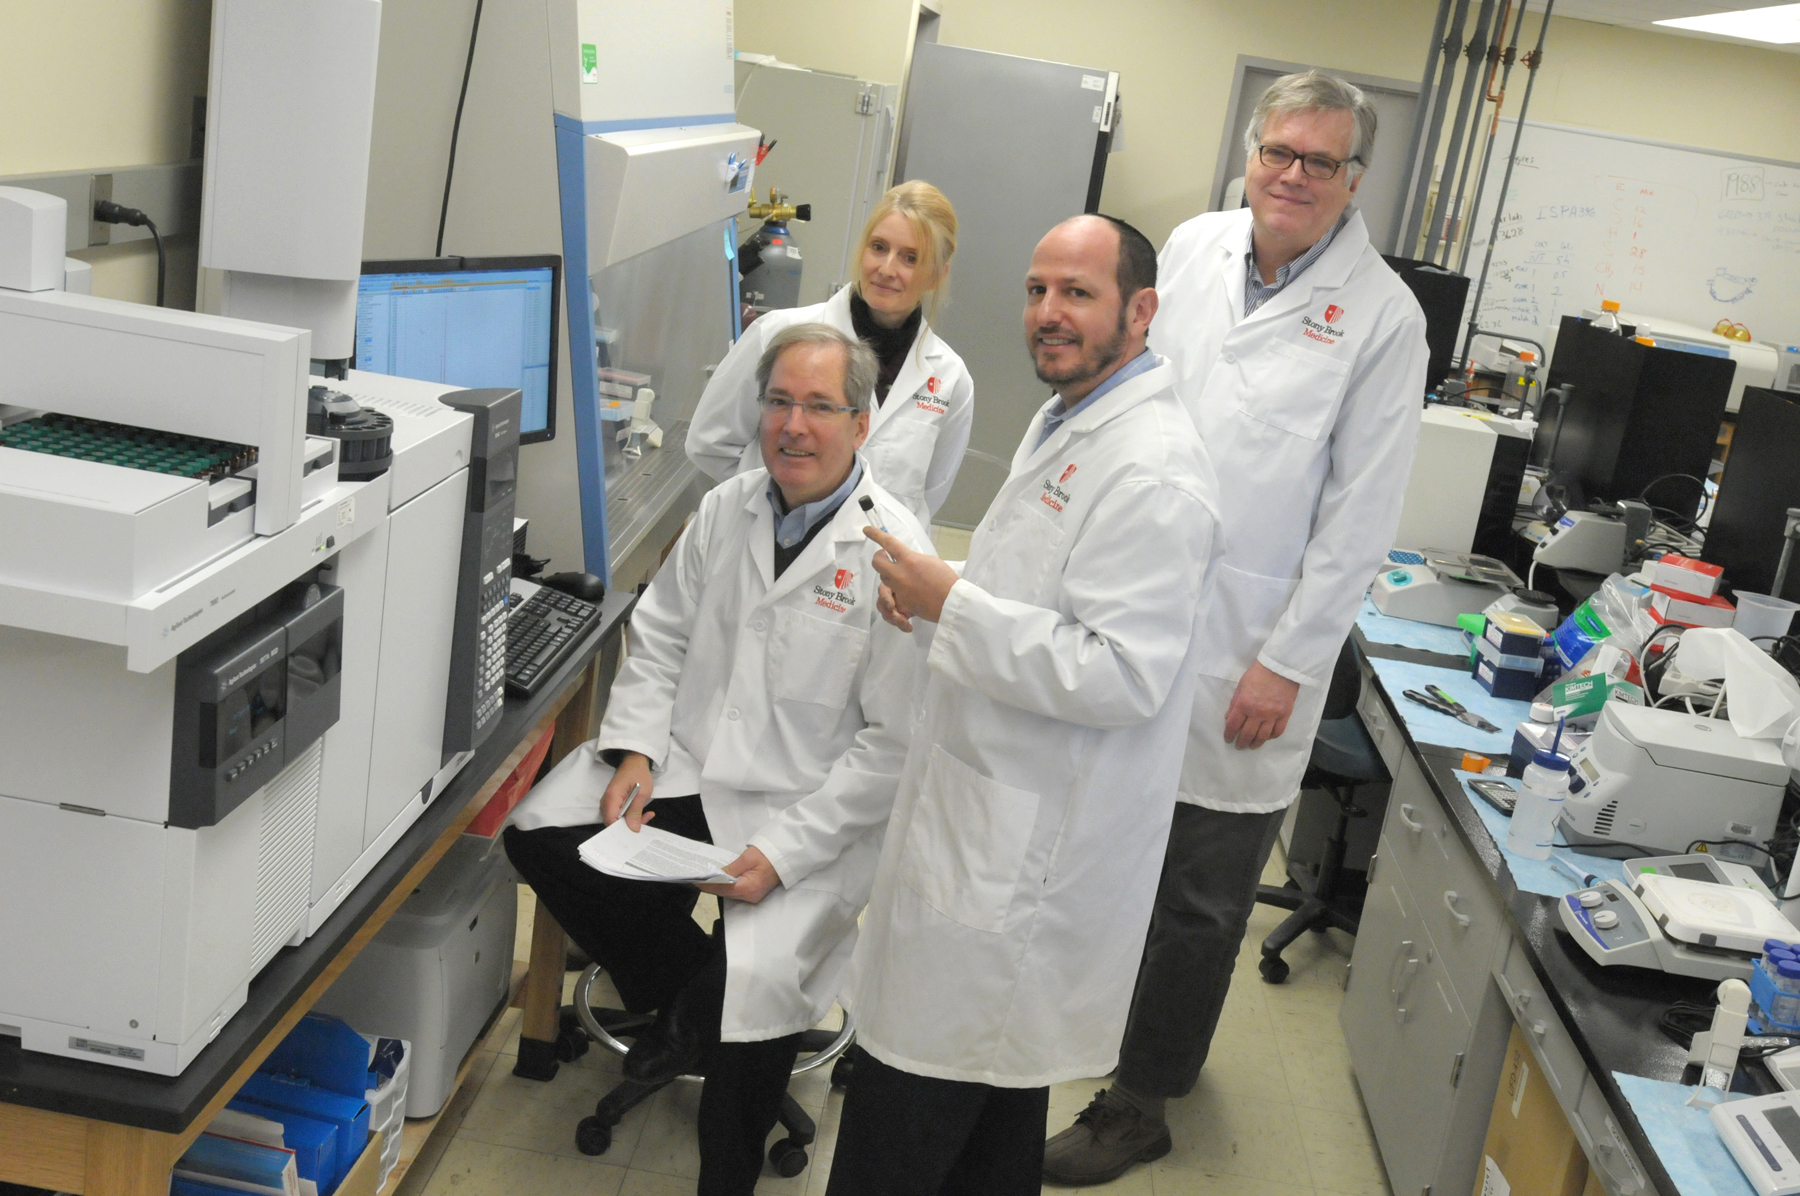 Stony brook cancer center research pathologists